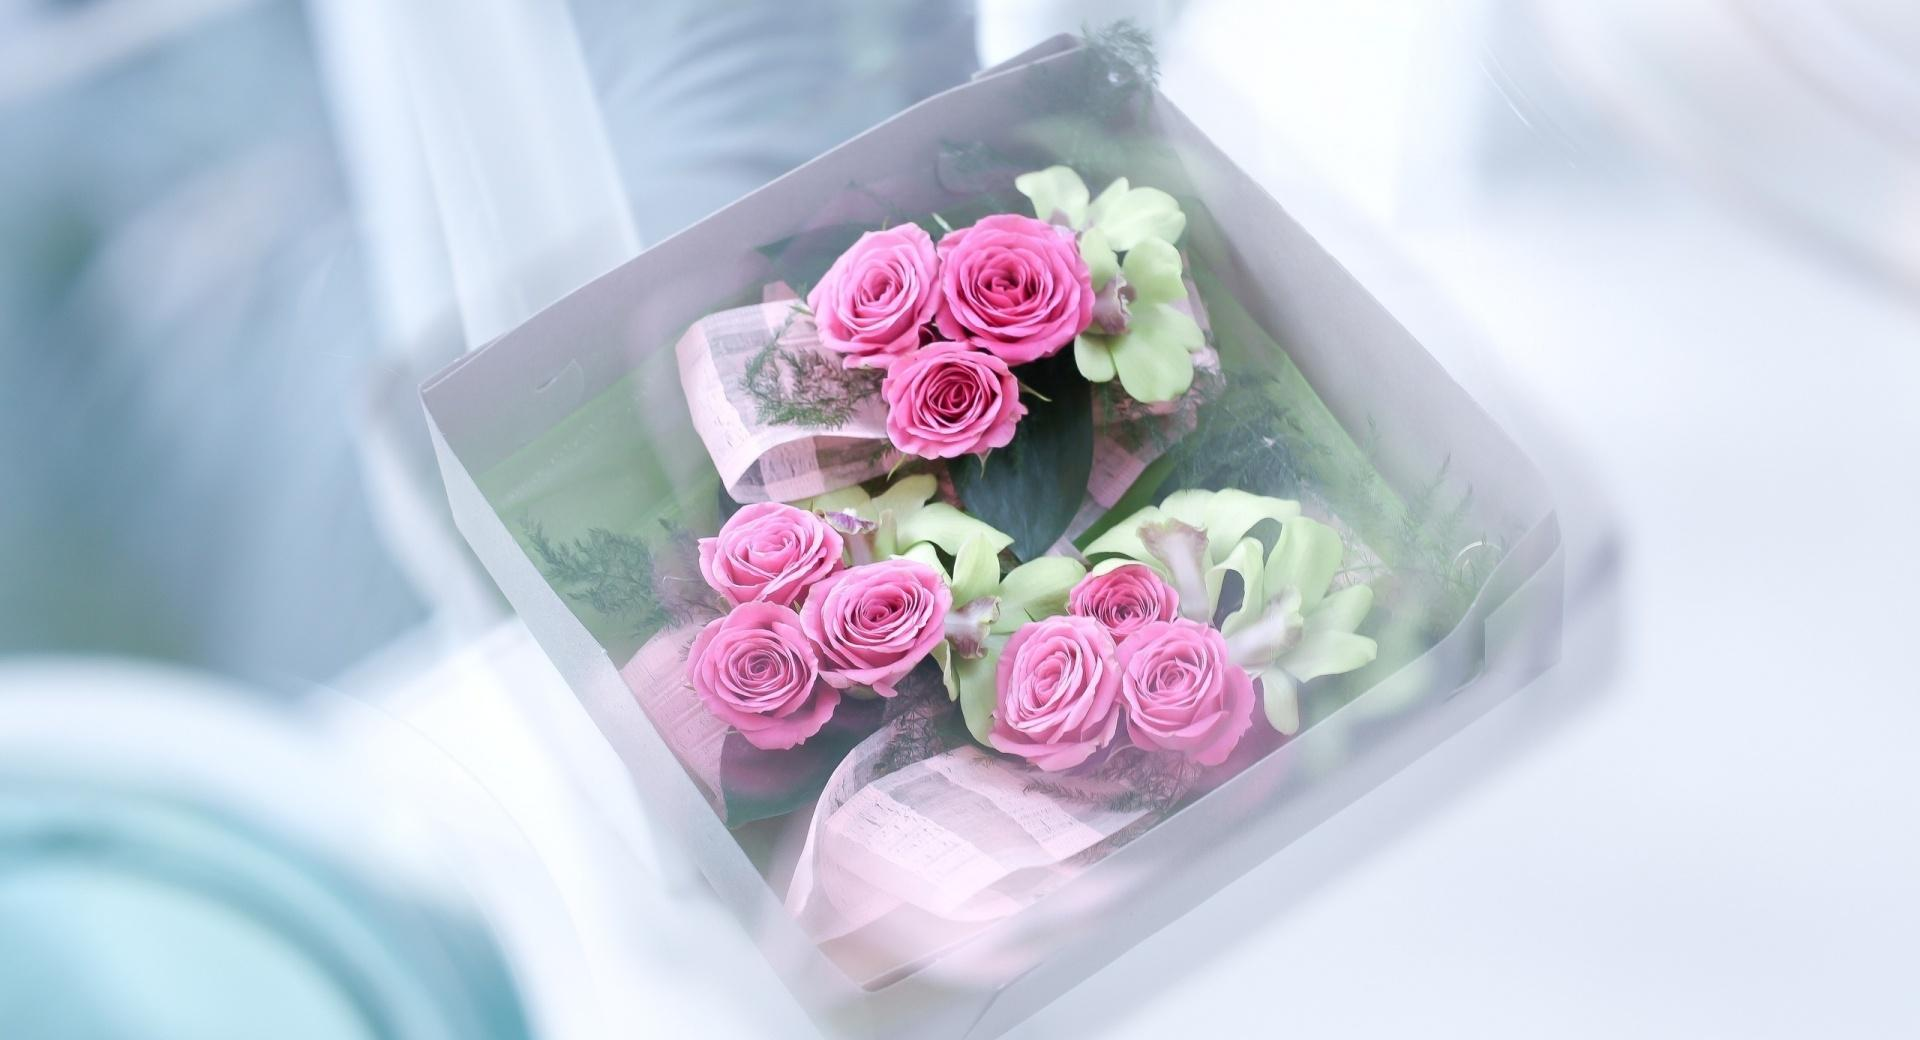 Box With Roses wallpapers HD quality